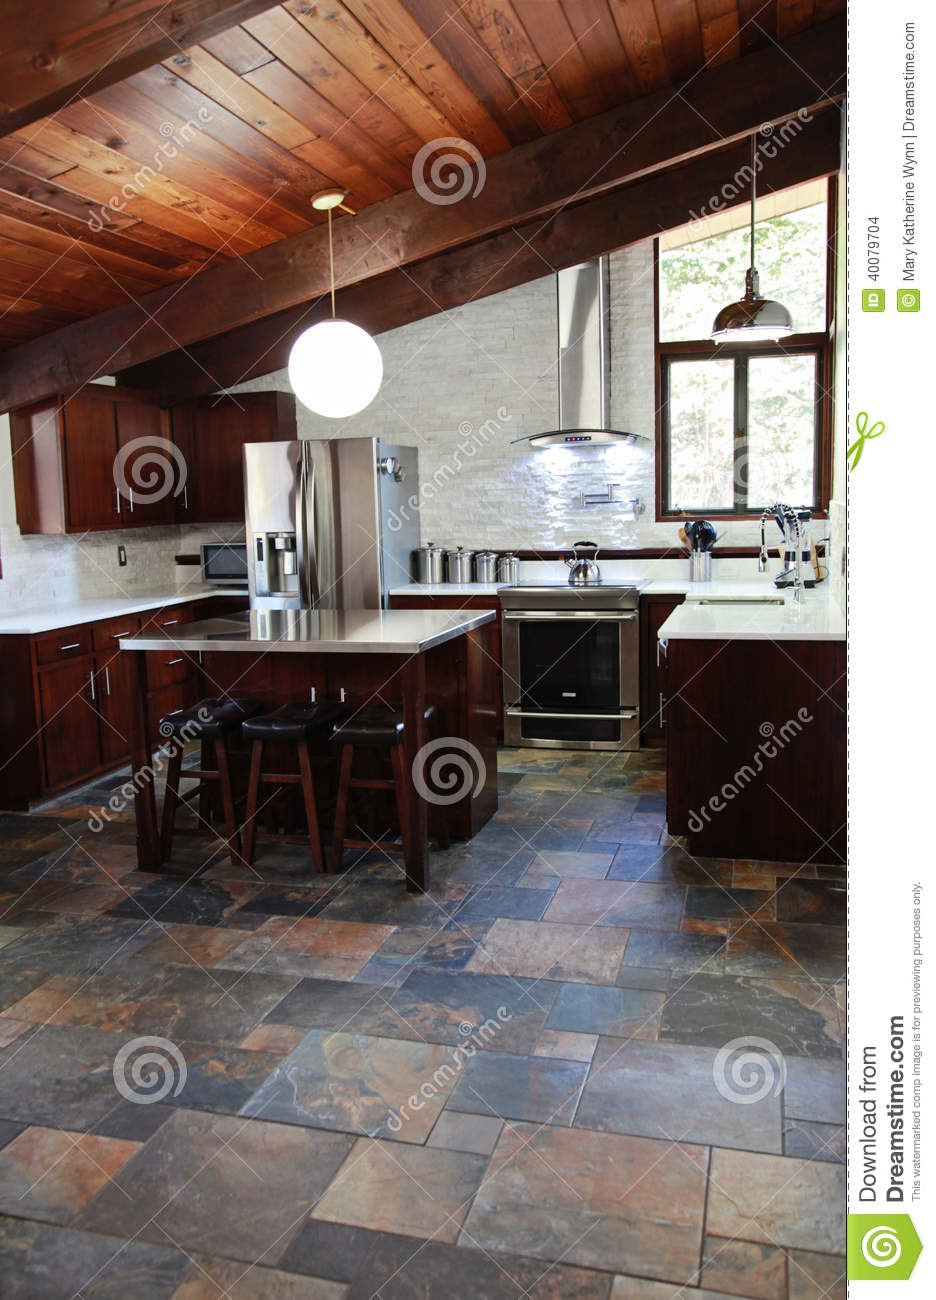 Slate Kitchen Flooring Modern Kitchen Stock Photo Image 40079704